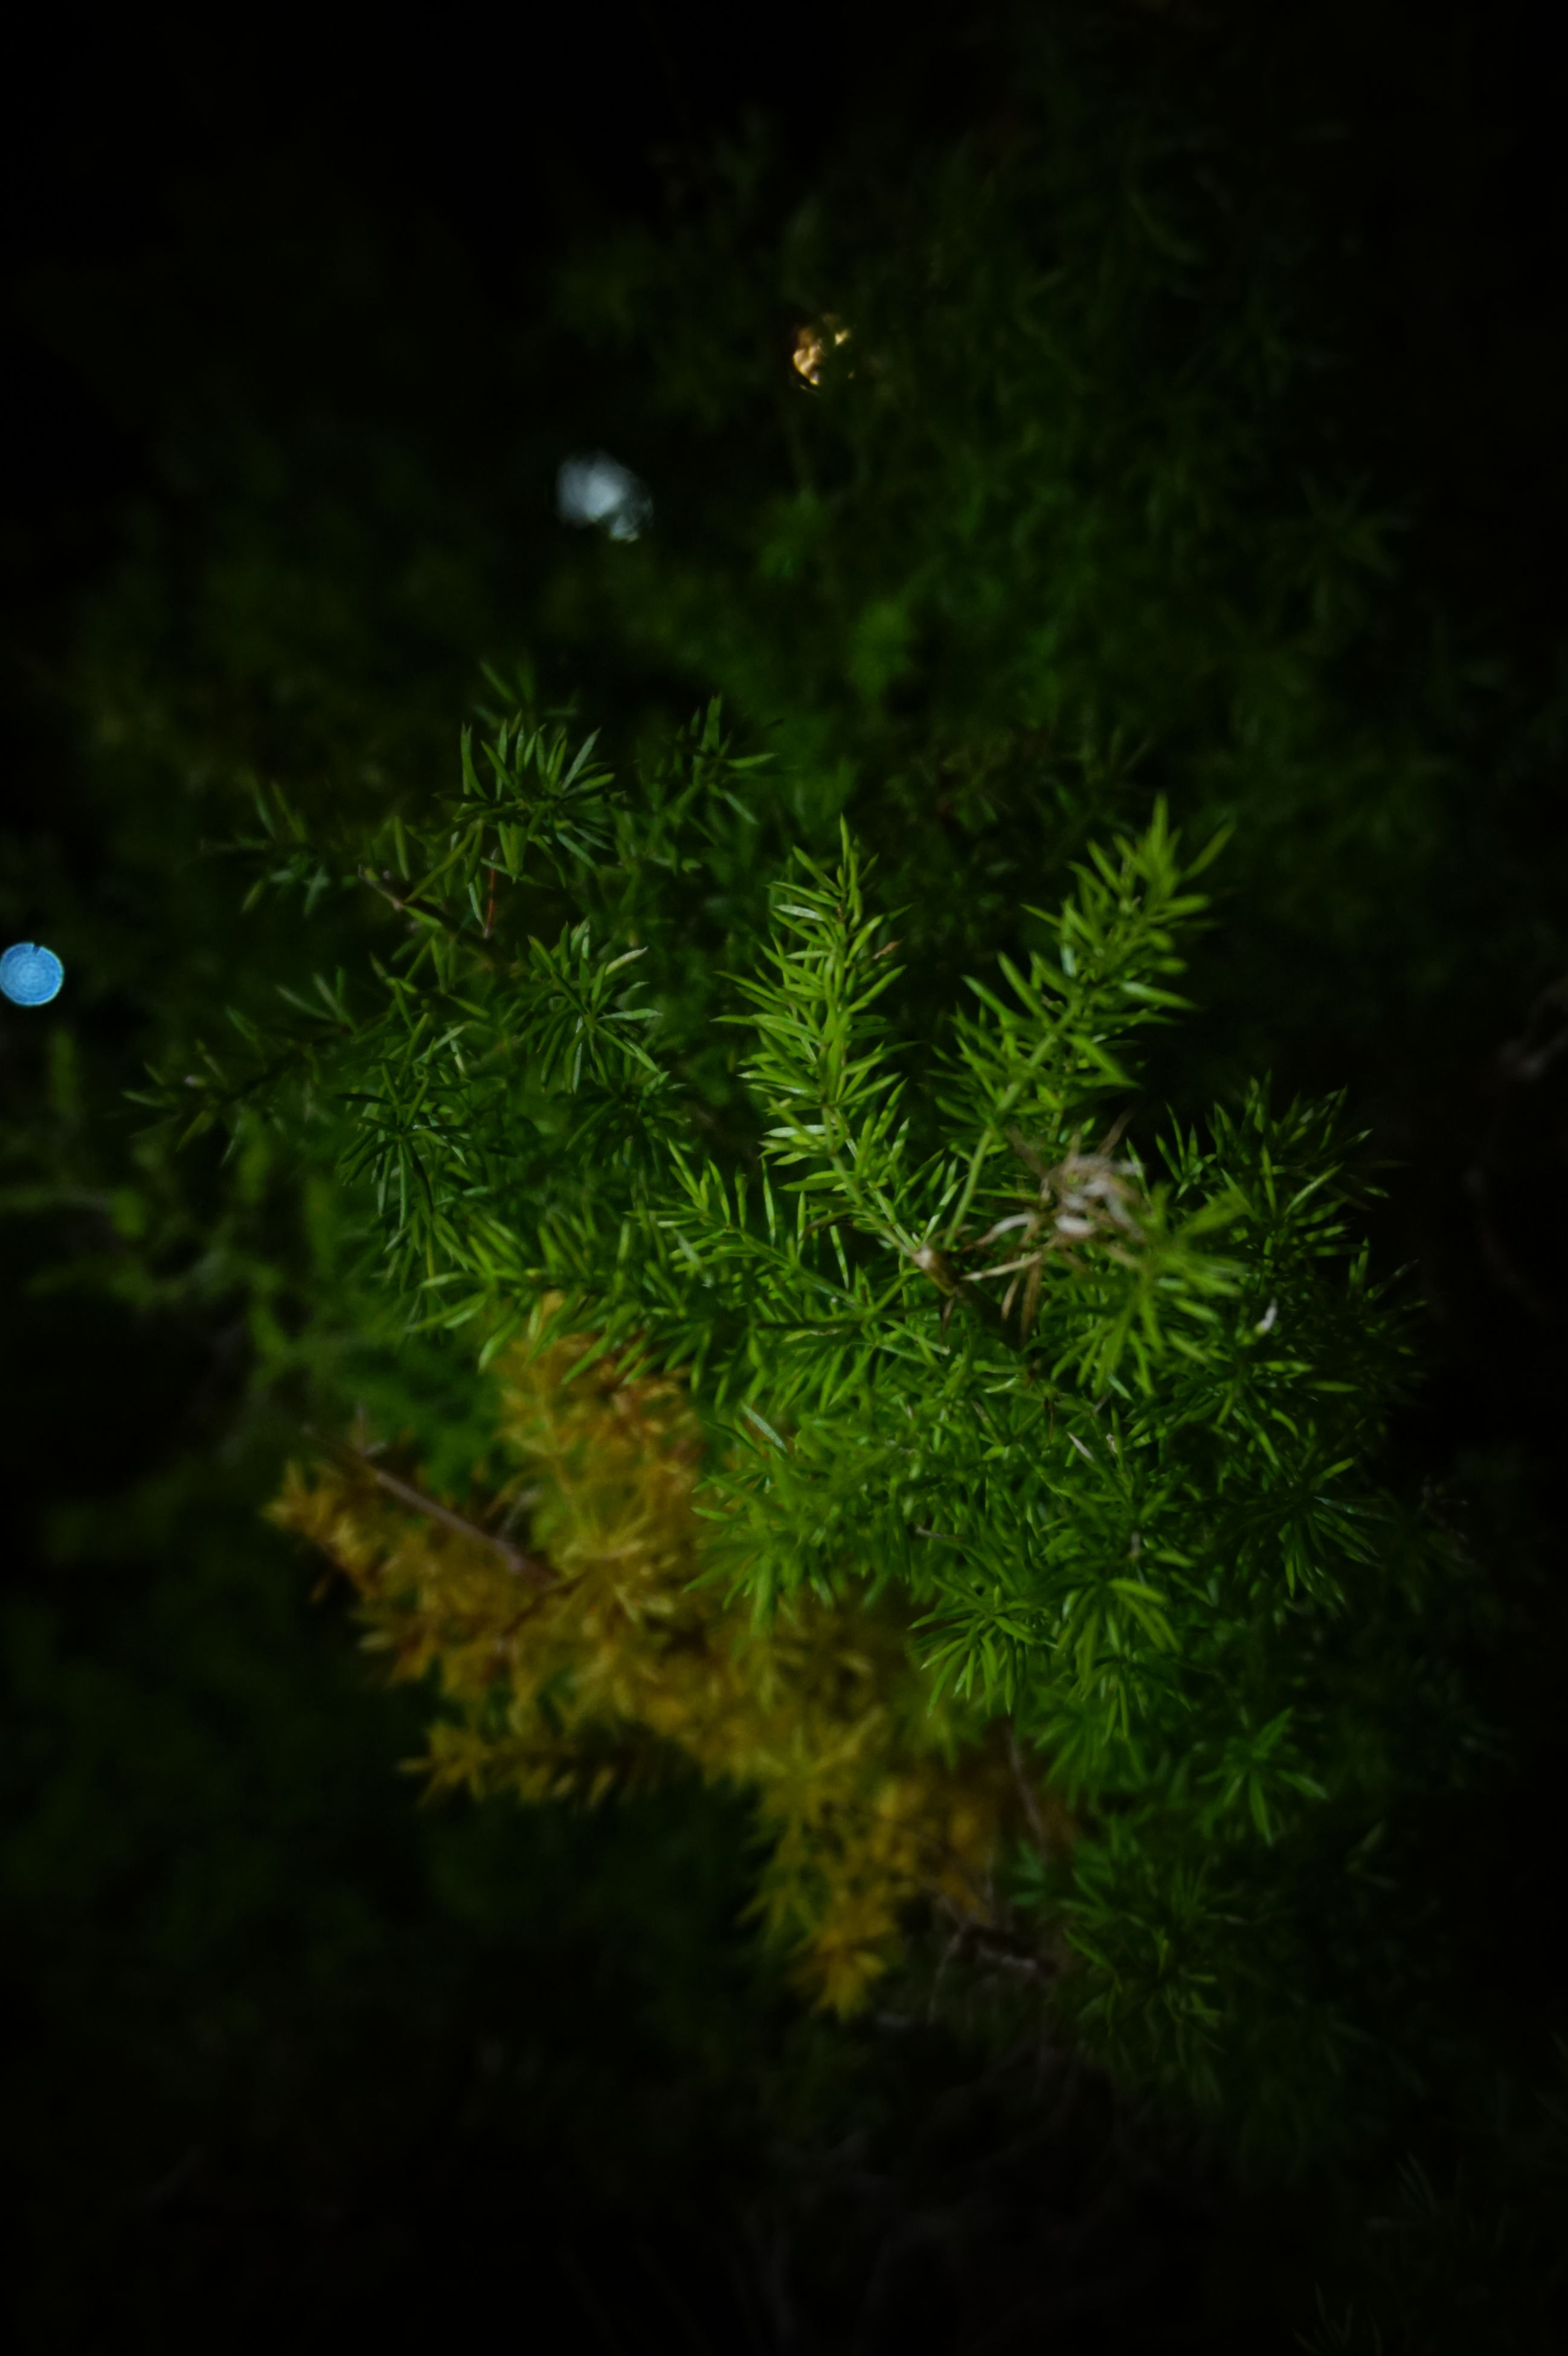 nature, tree, green color, growth, leaf, no people, beauty in nature, night, plant, close-up, outdoors, branch, coniferous tree, needle - plant part, sky